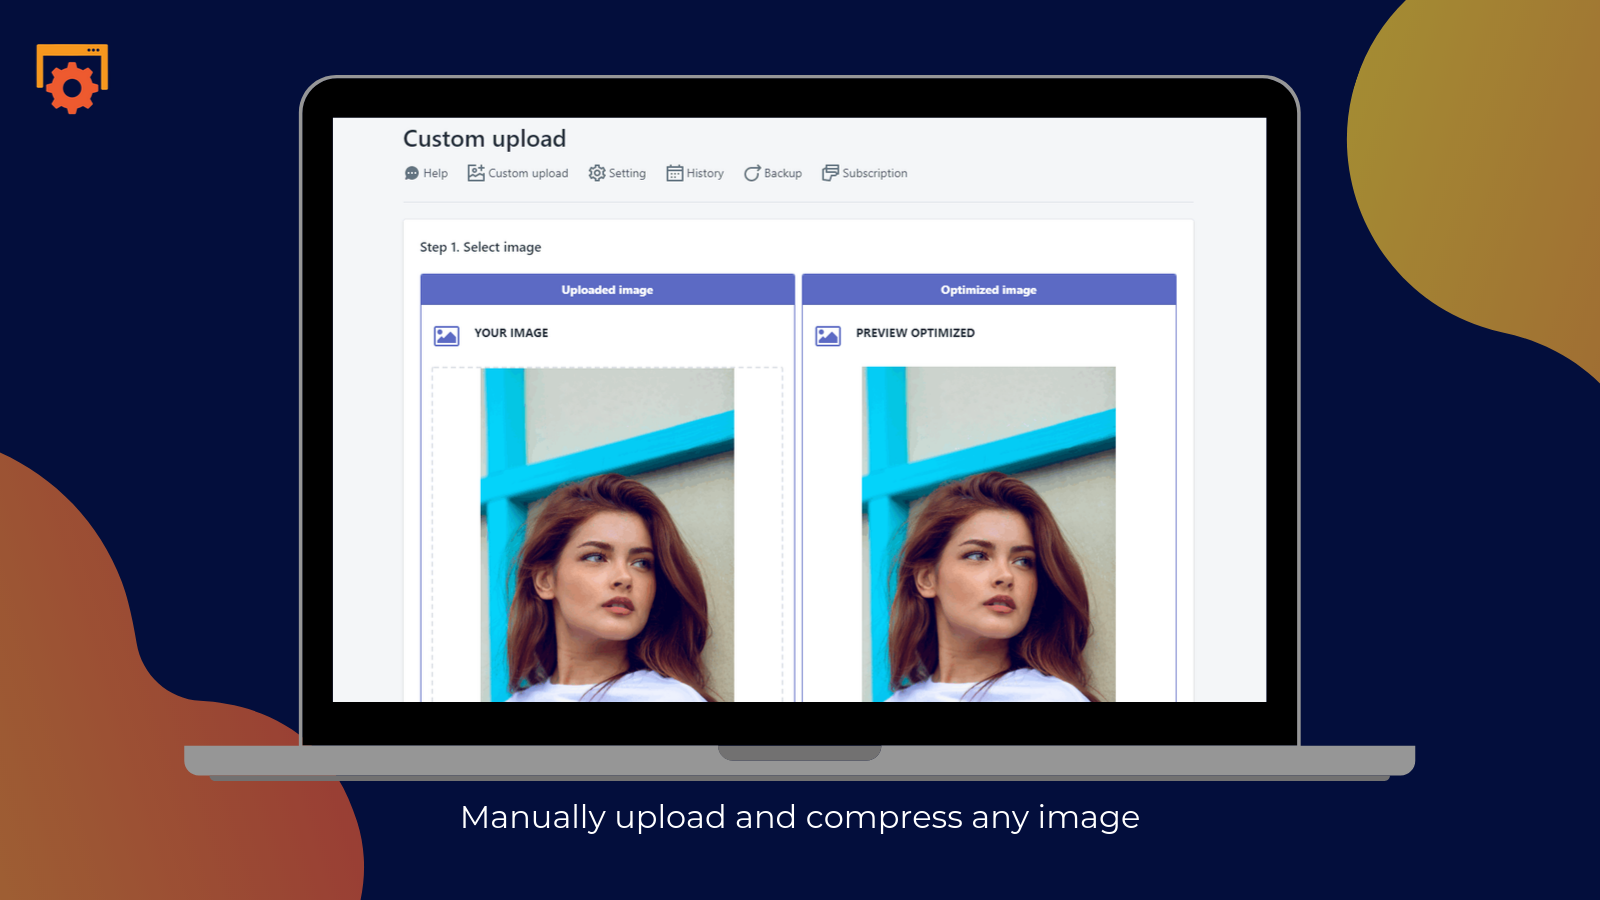 shopify smart image optimizer app by Secomapp - Manually upload and compress any images